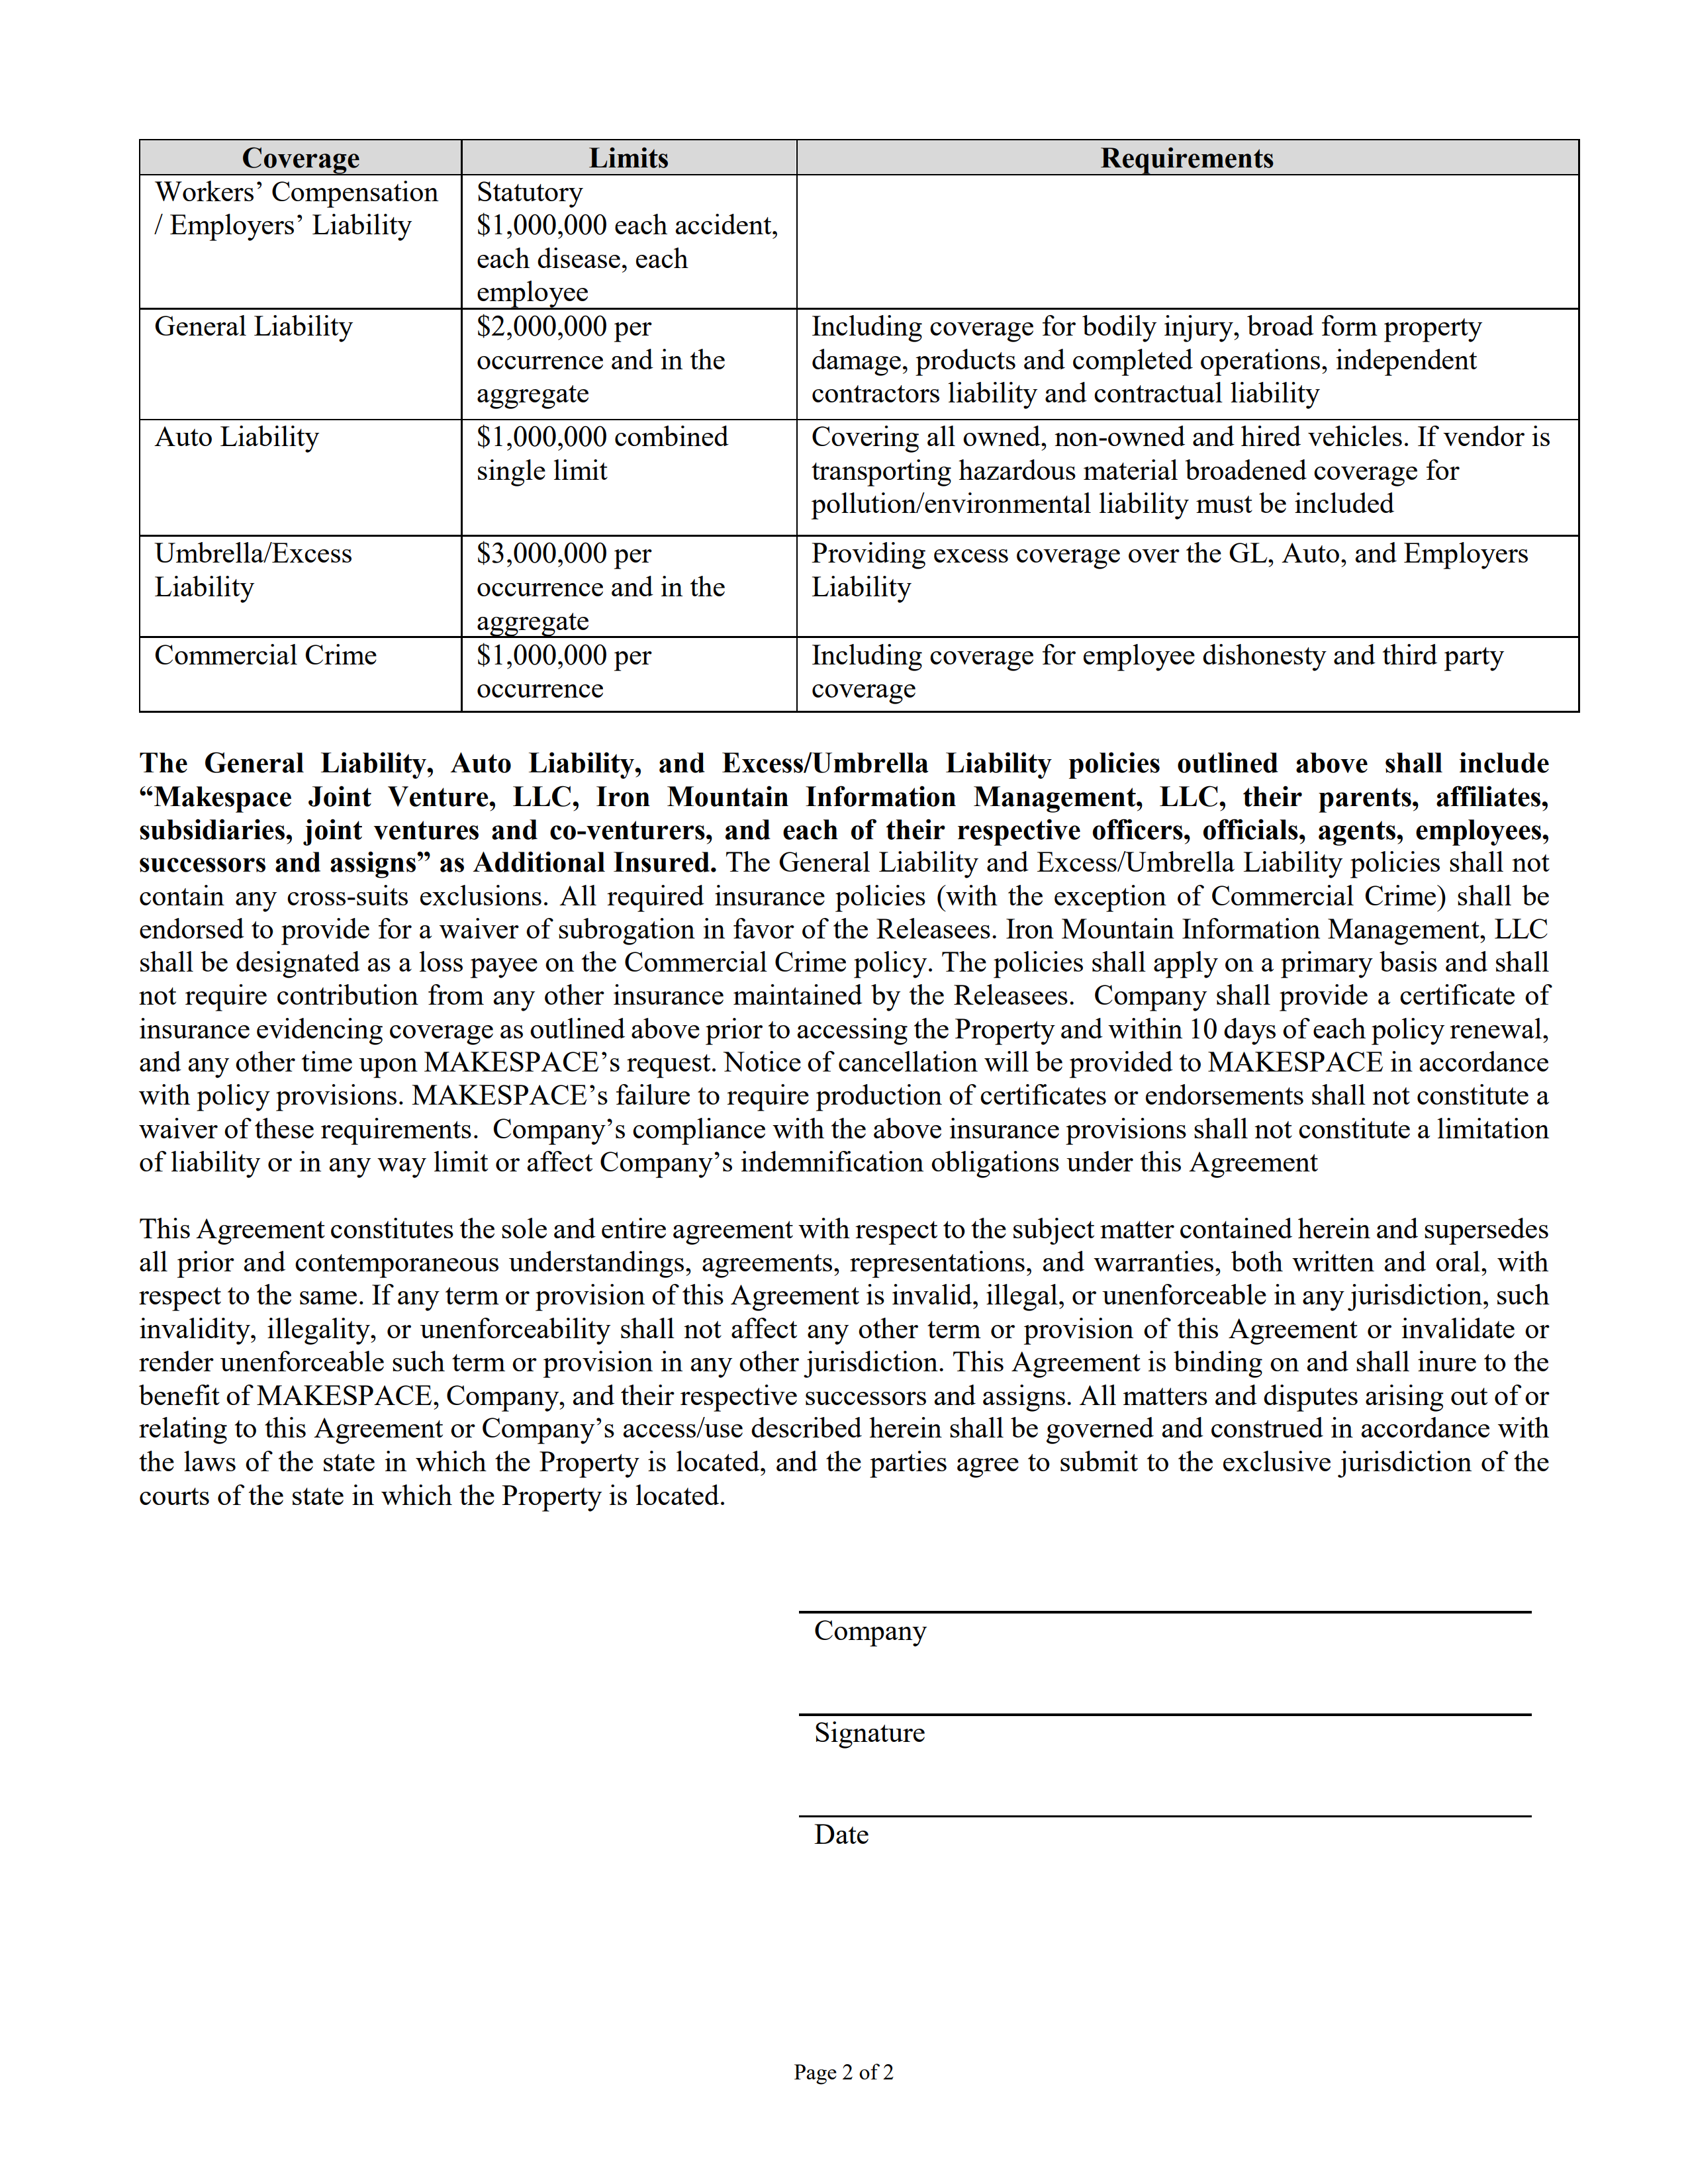 Makespace_-_Iron_Mountain_Facility_Access_Agreement__Company__2-20-20_FINAL_-_PAGE_2.png